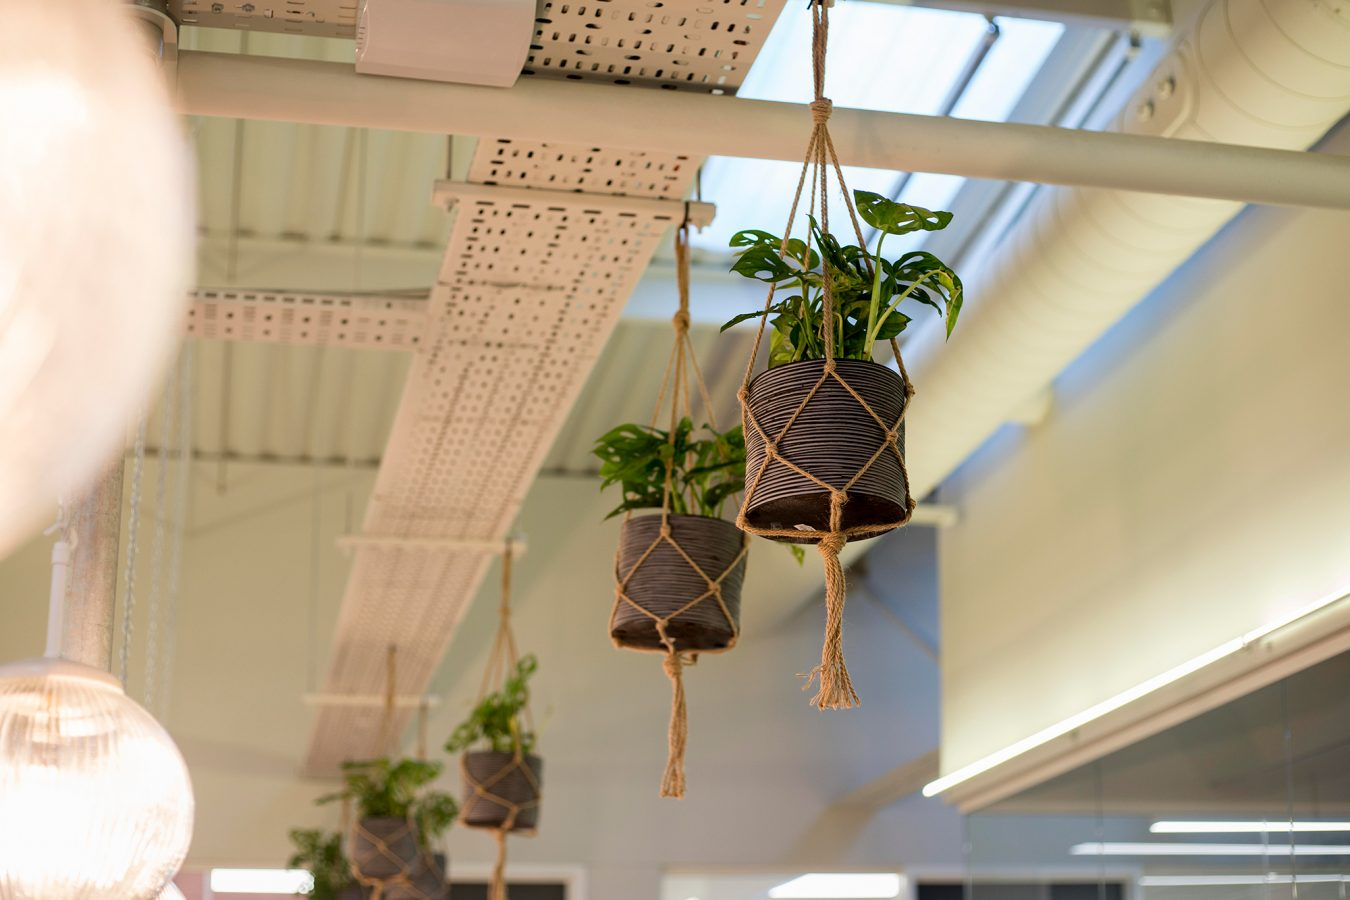 Plants pots easy to grow in office space near London.